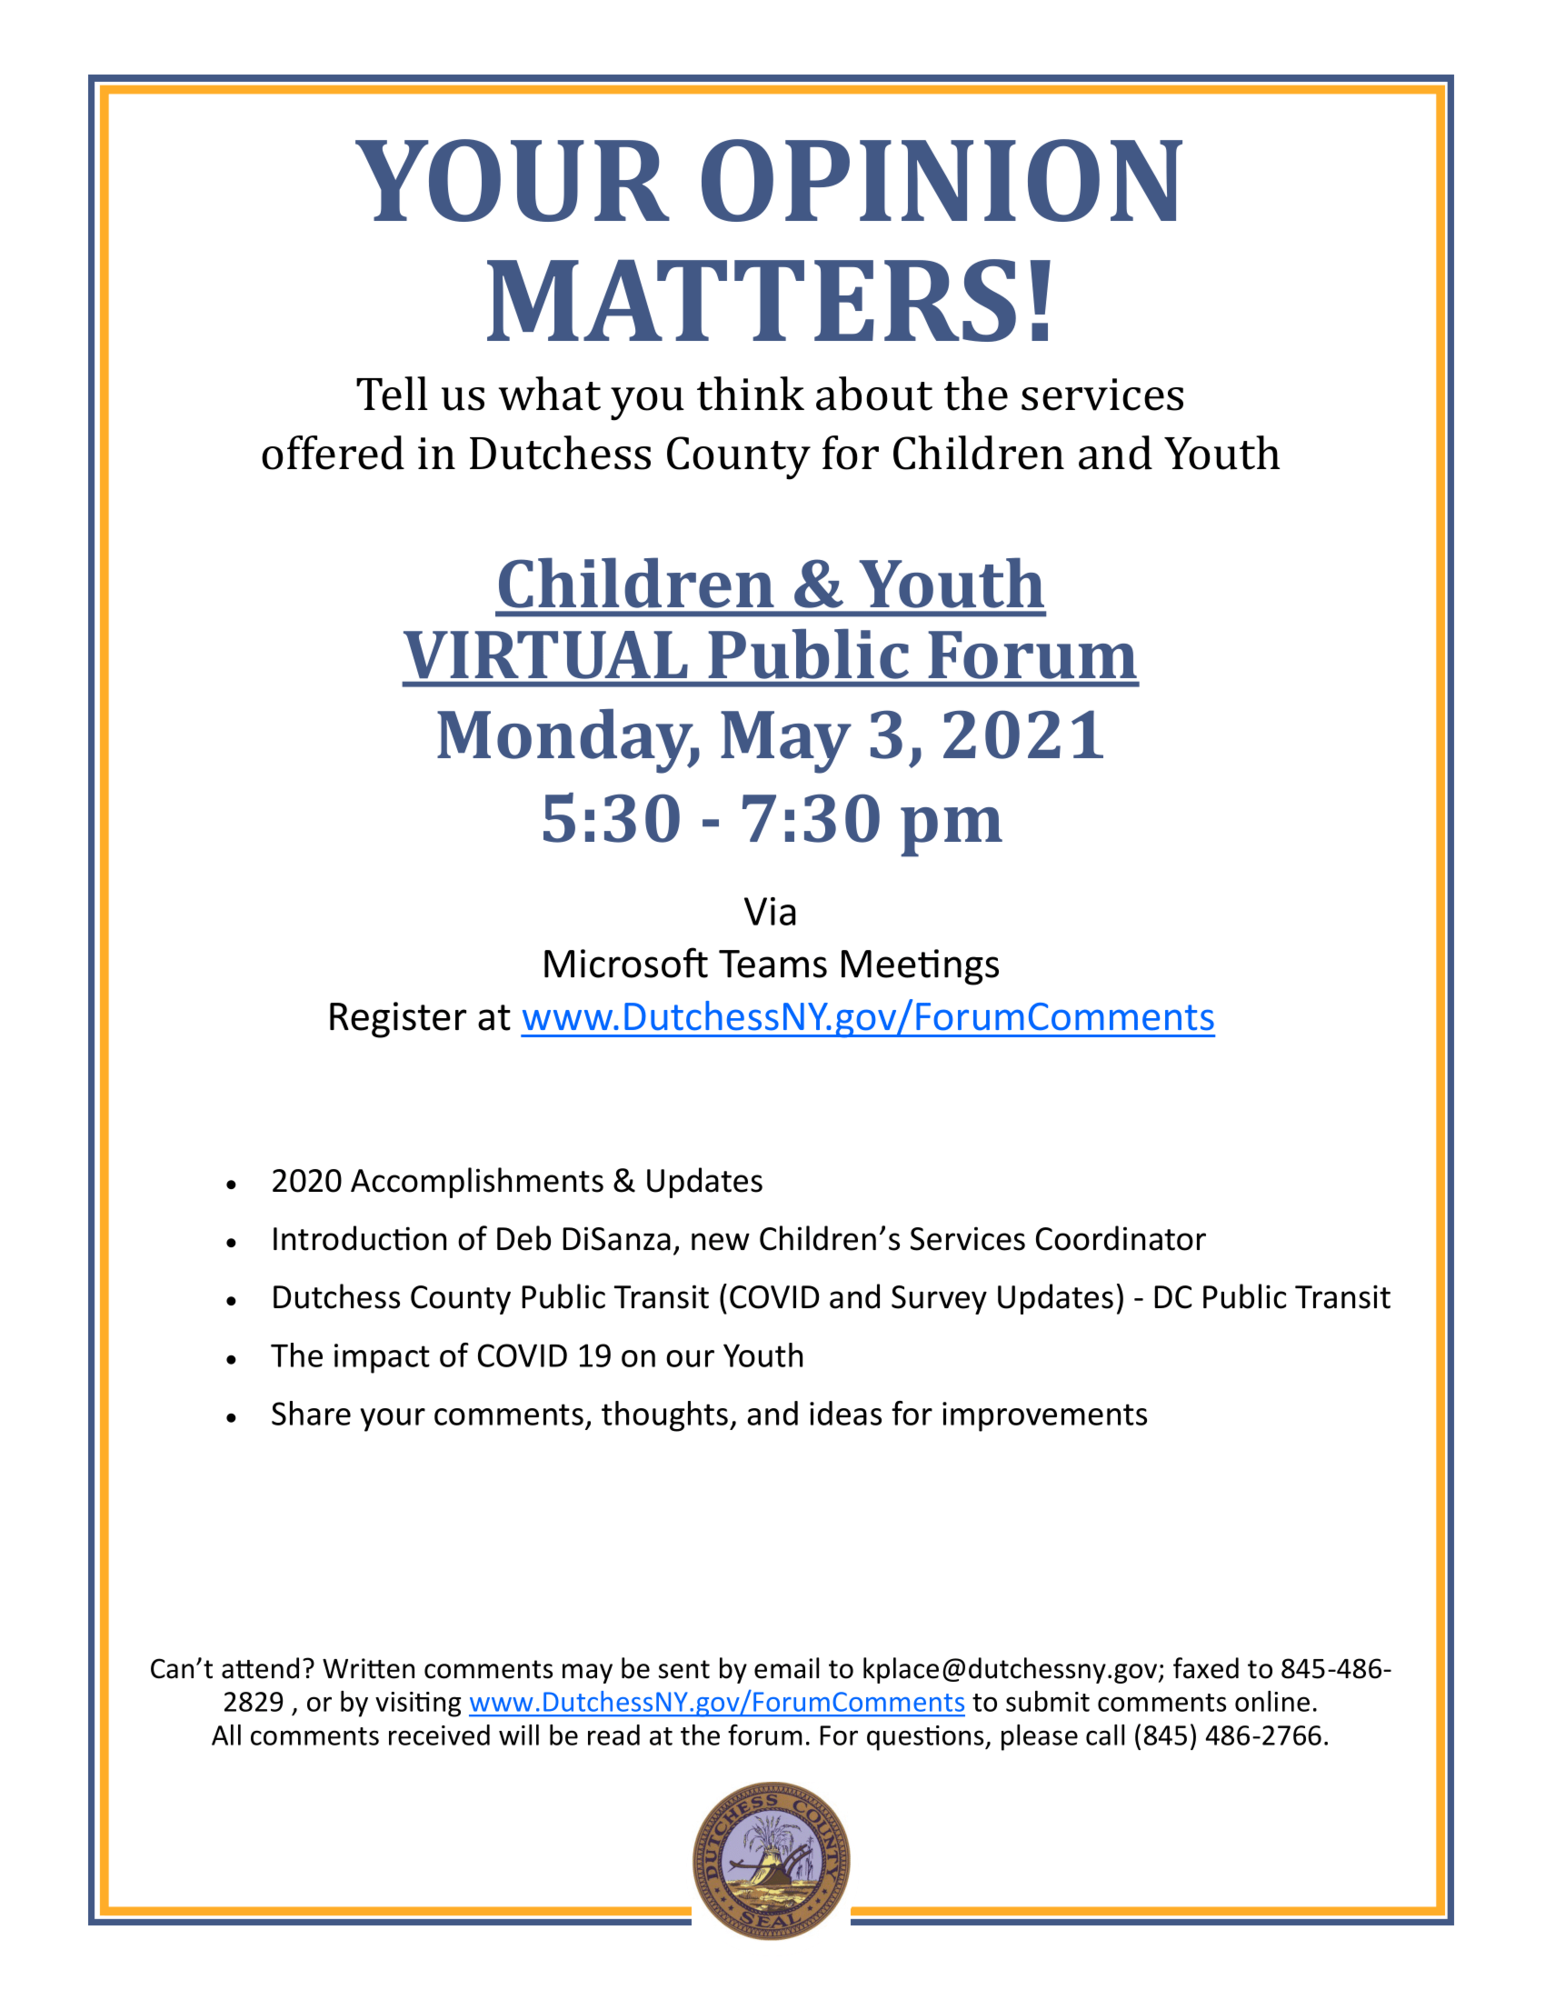 Mental Health Services for Children and Youth